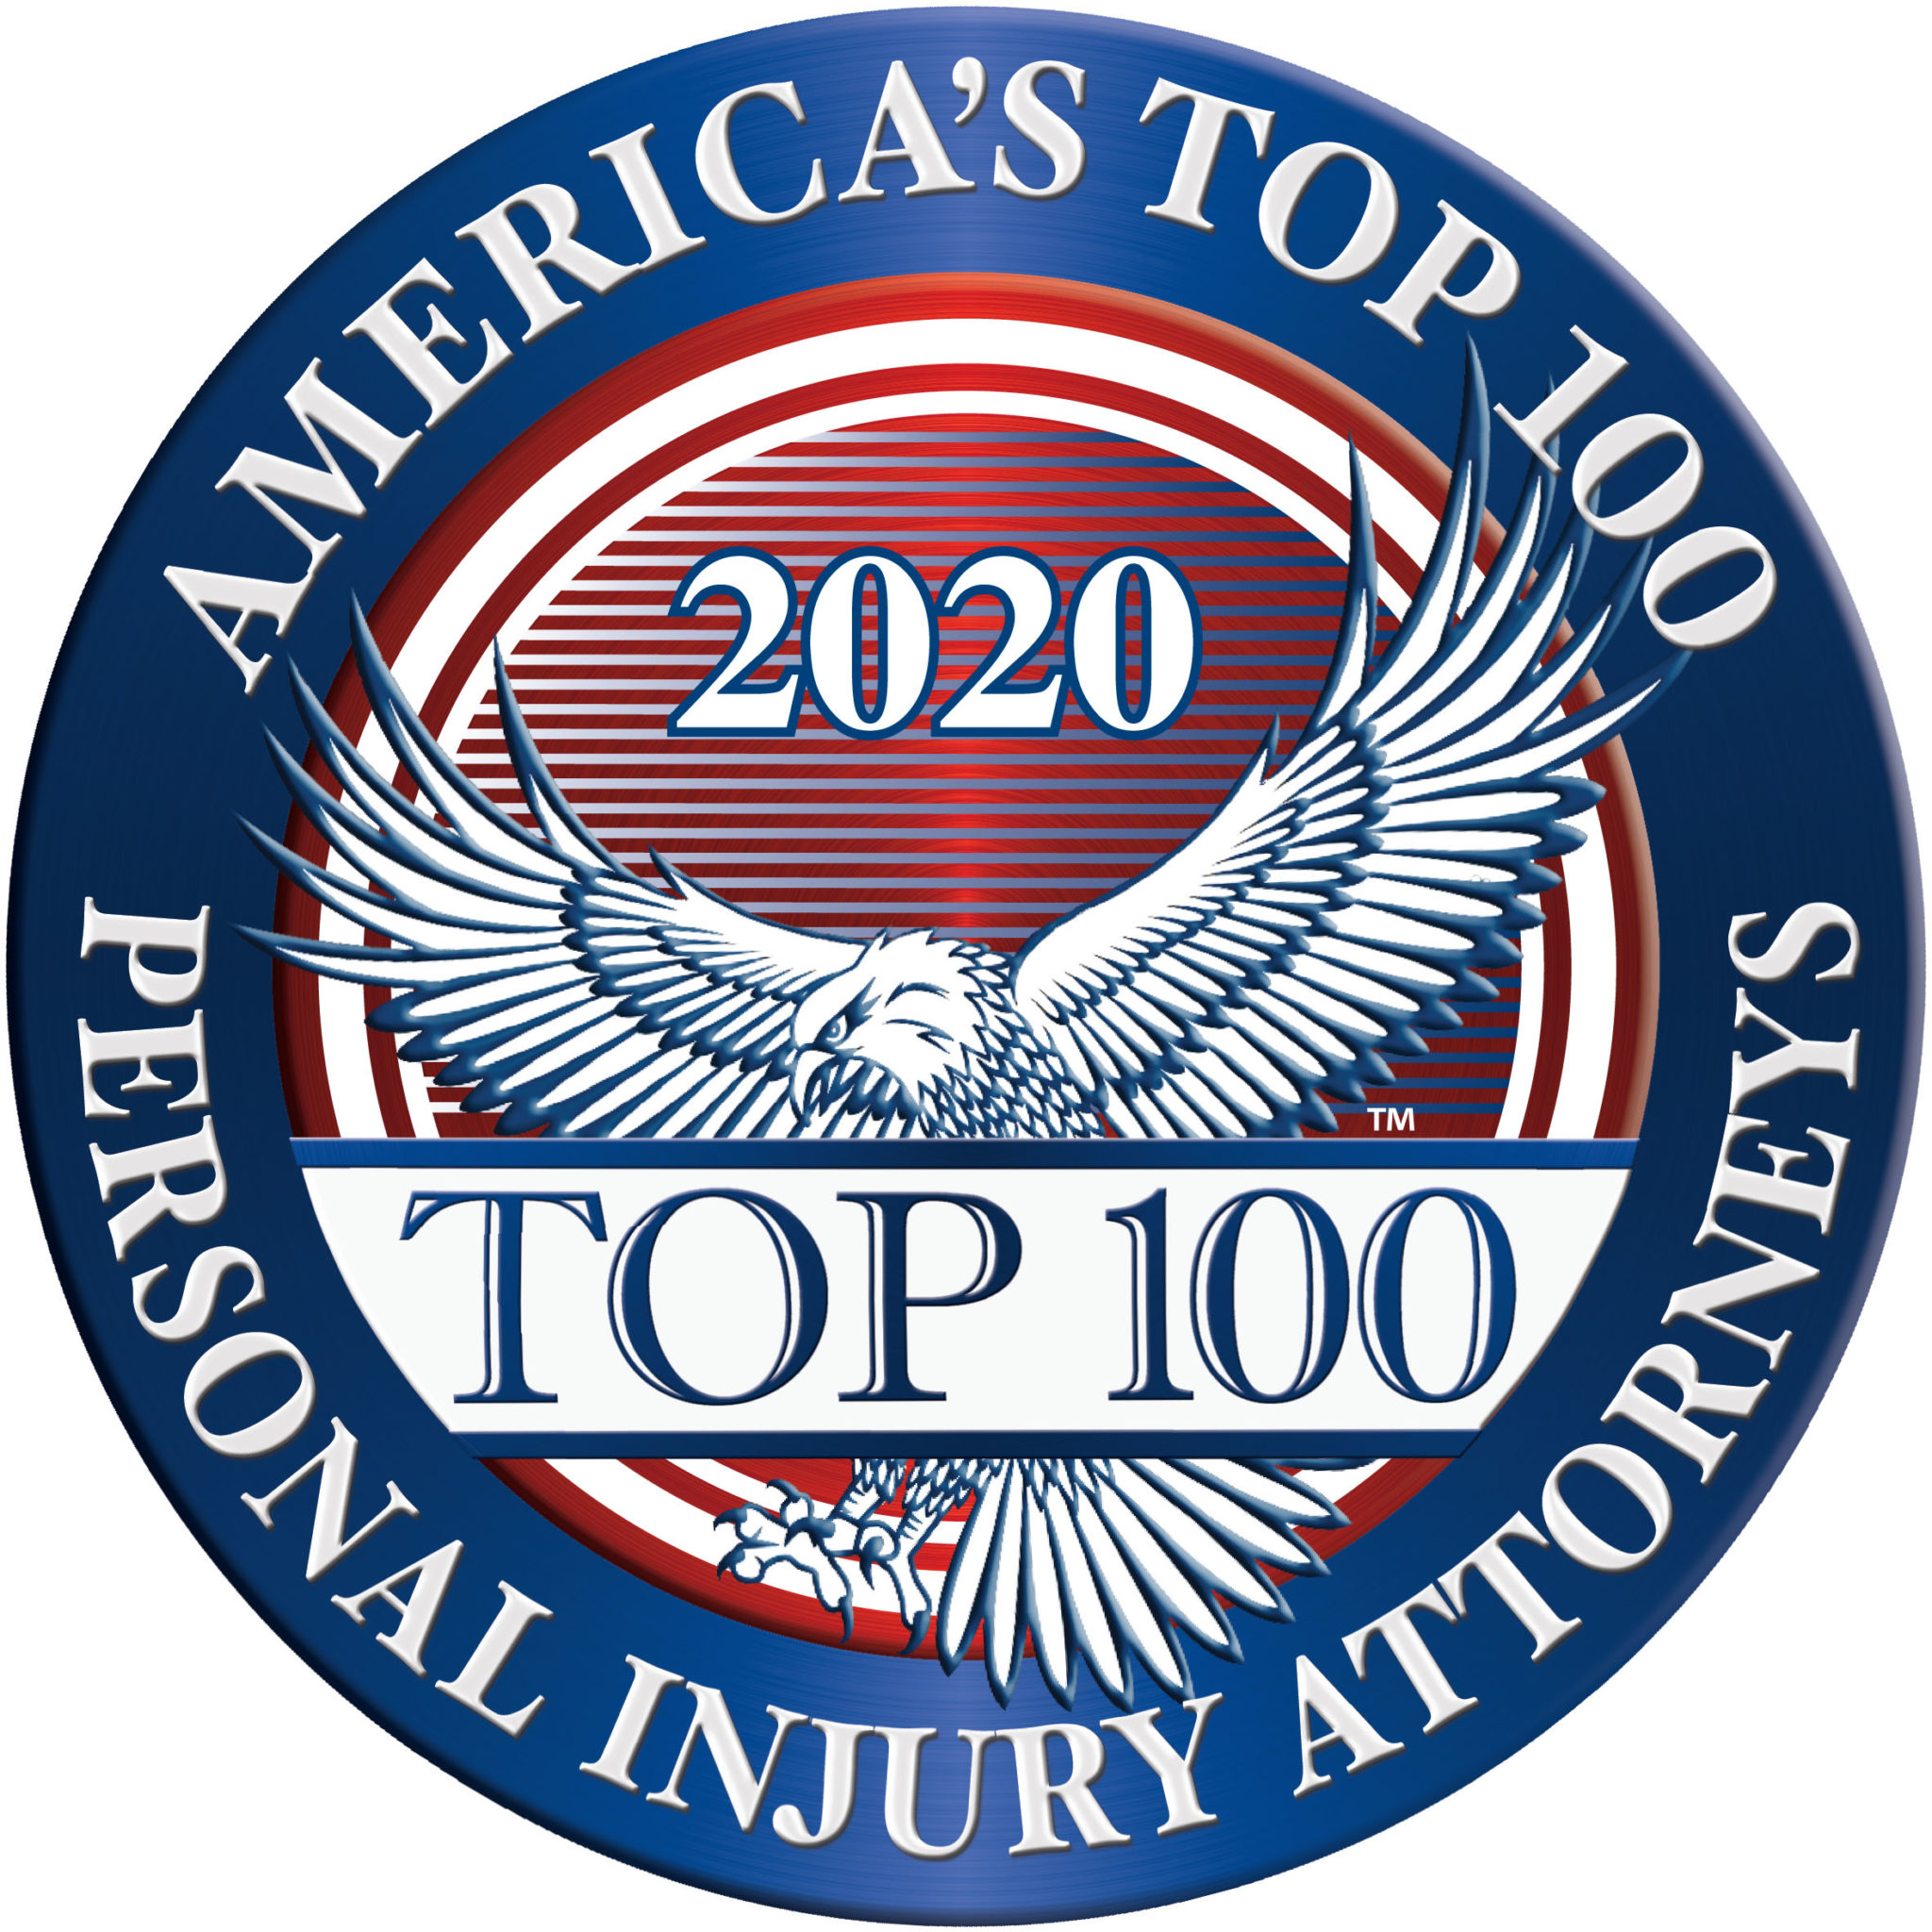 America's Top 100 Personal Injury Attorneys 2020 Recipient Award